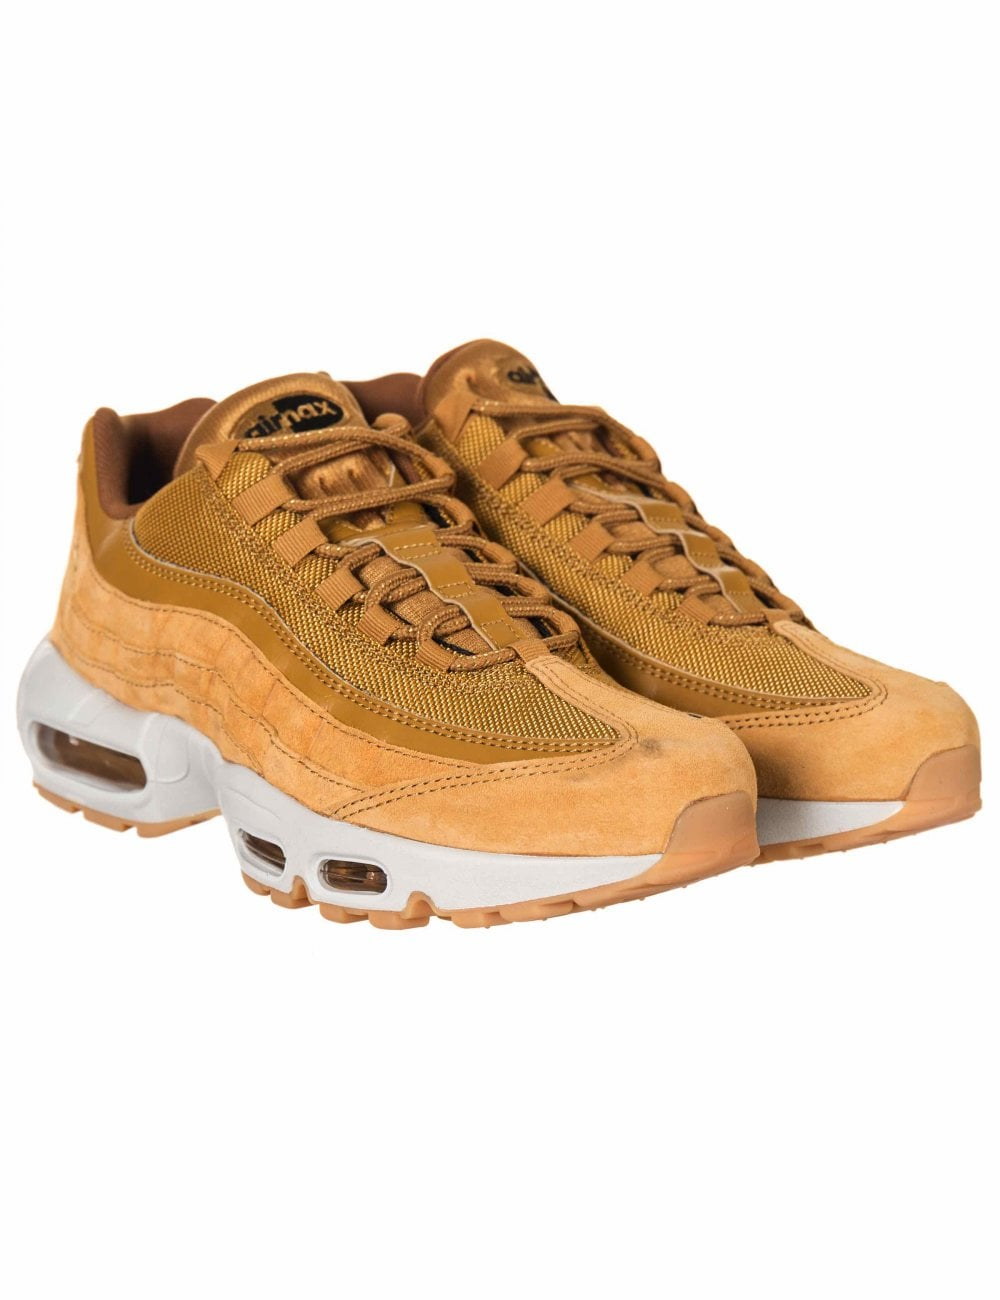 save off 56b1e 3e5f8 Nike Air Max 95 SE Trainers - Wheat Wheat